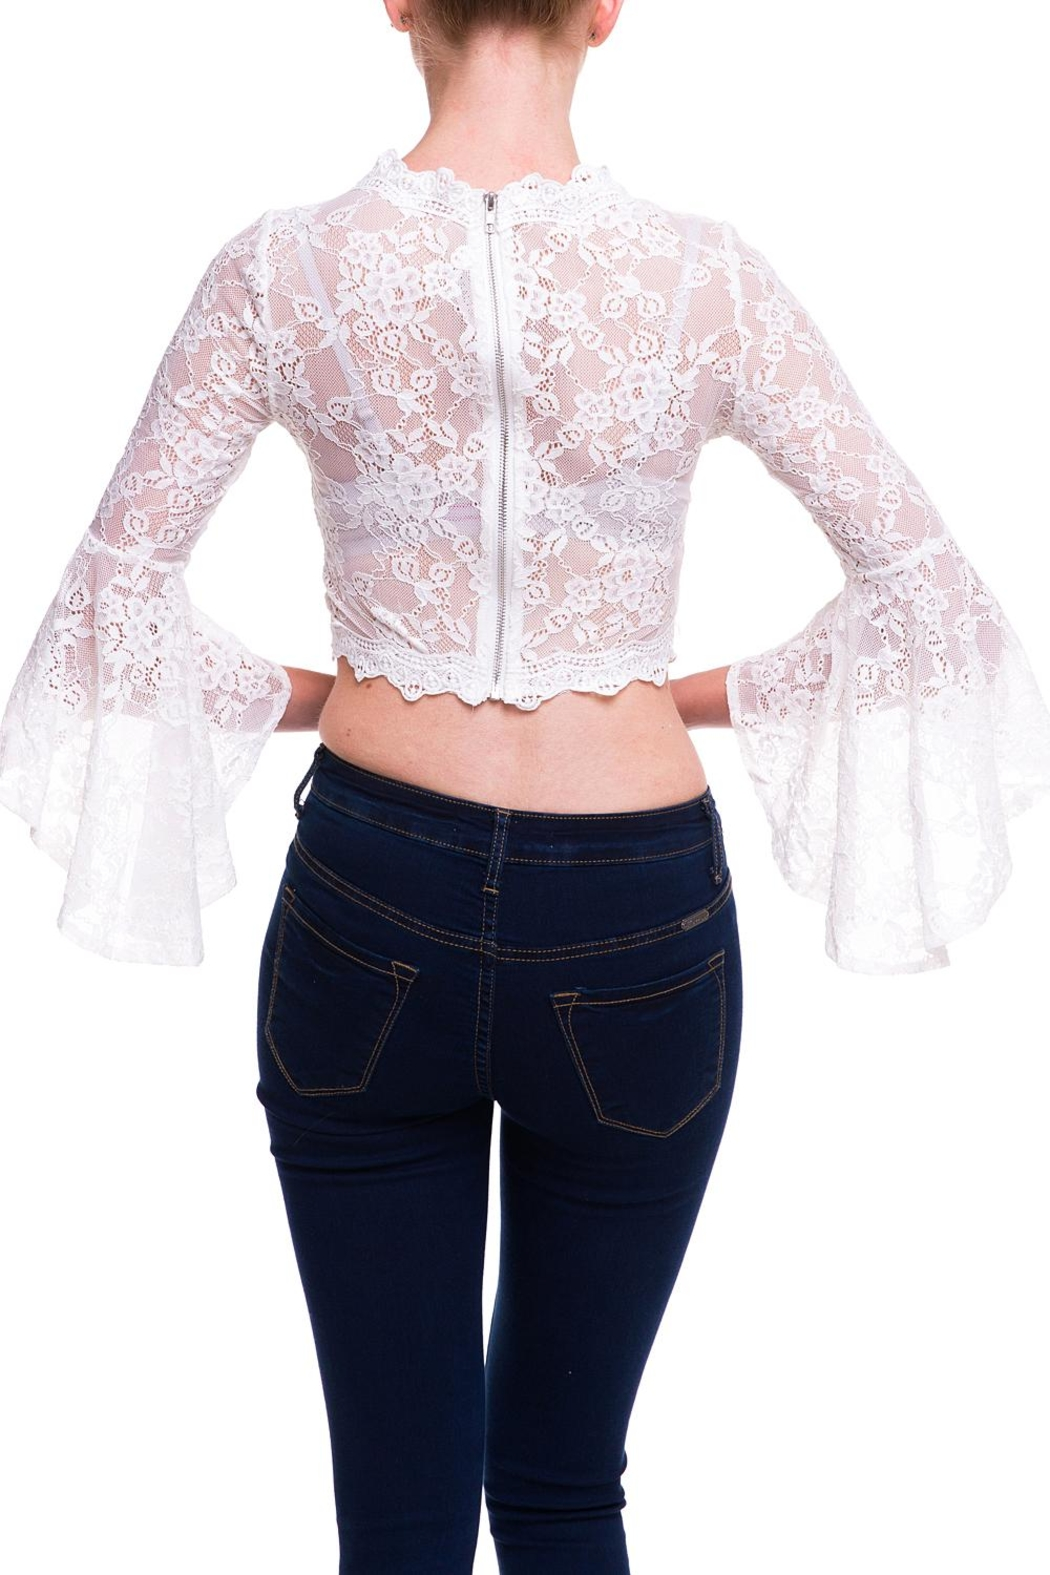 2642c18b15797 Salt Lace Sleeve Top from New York by Dor L Dor — Shoptiques